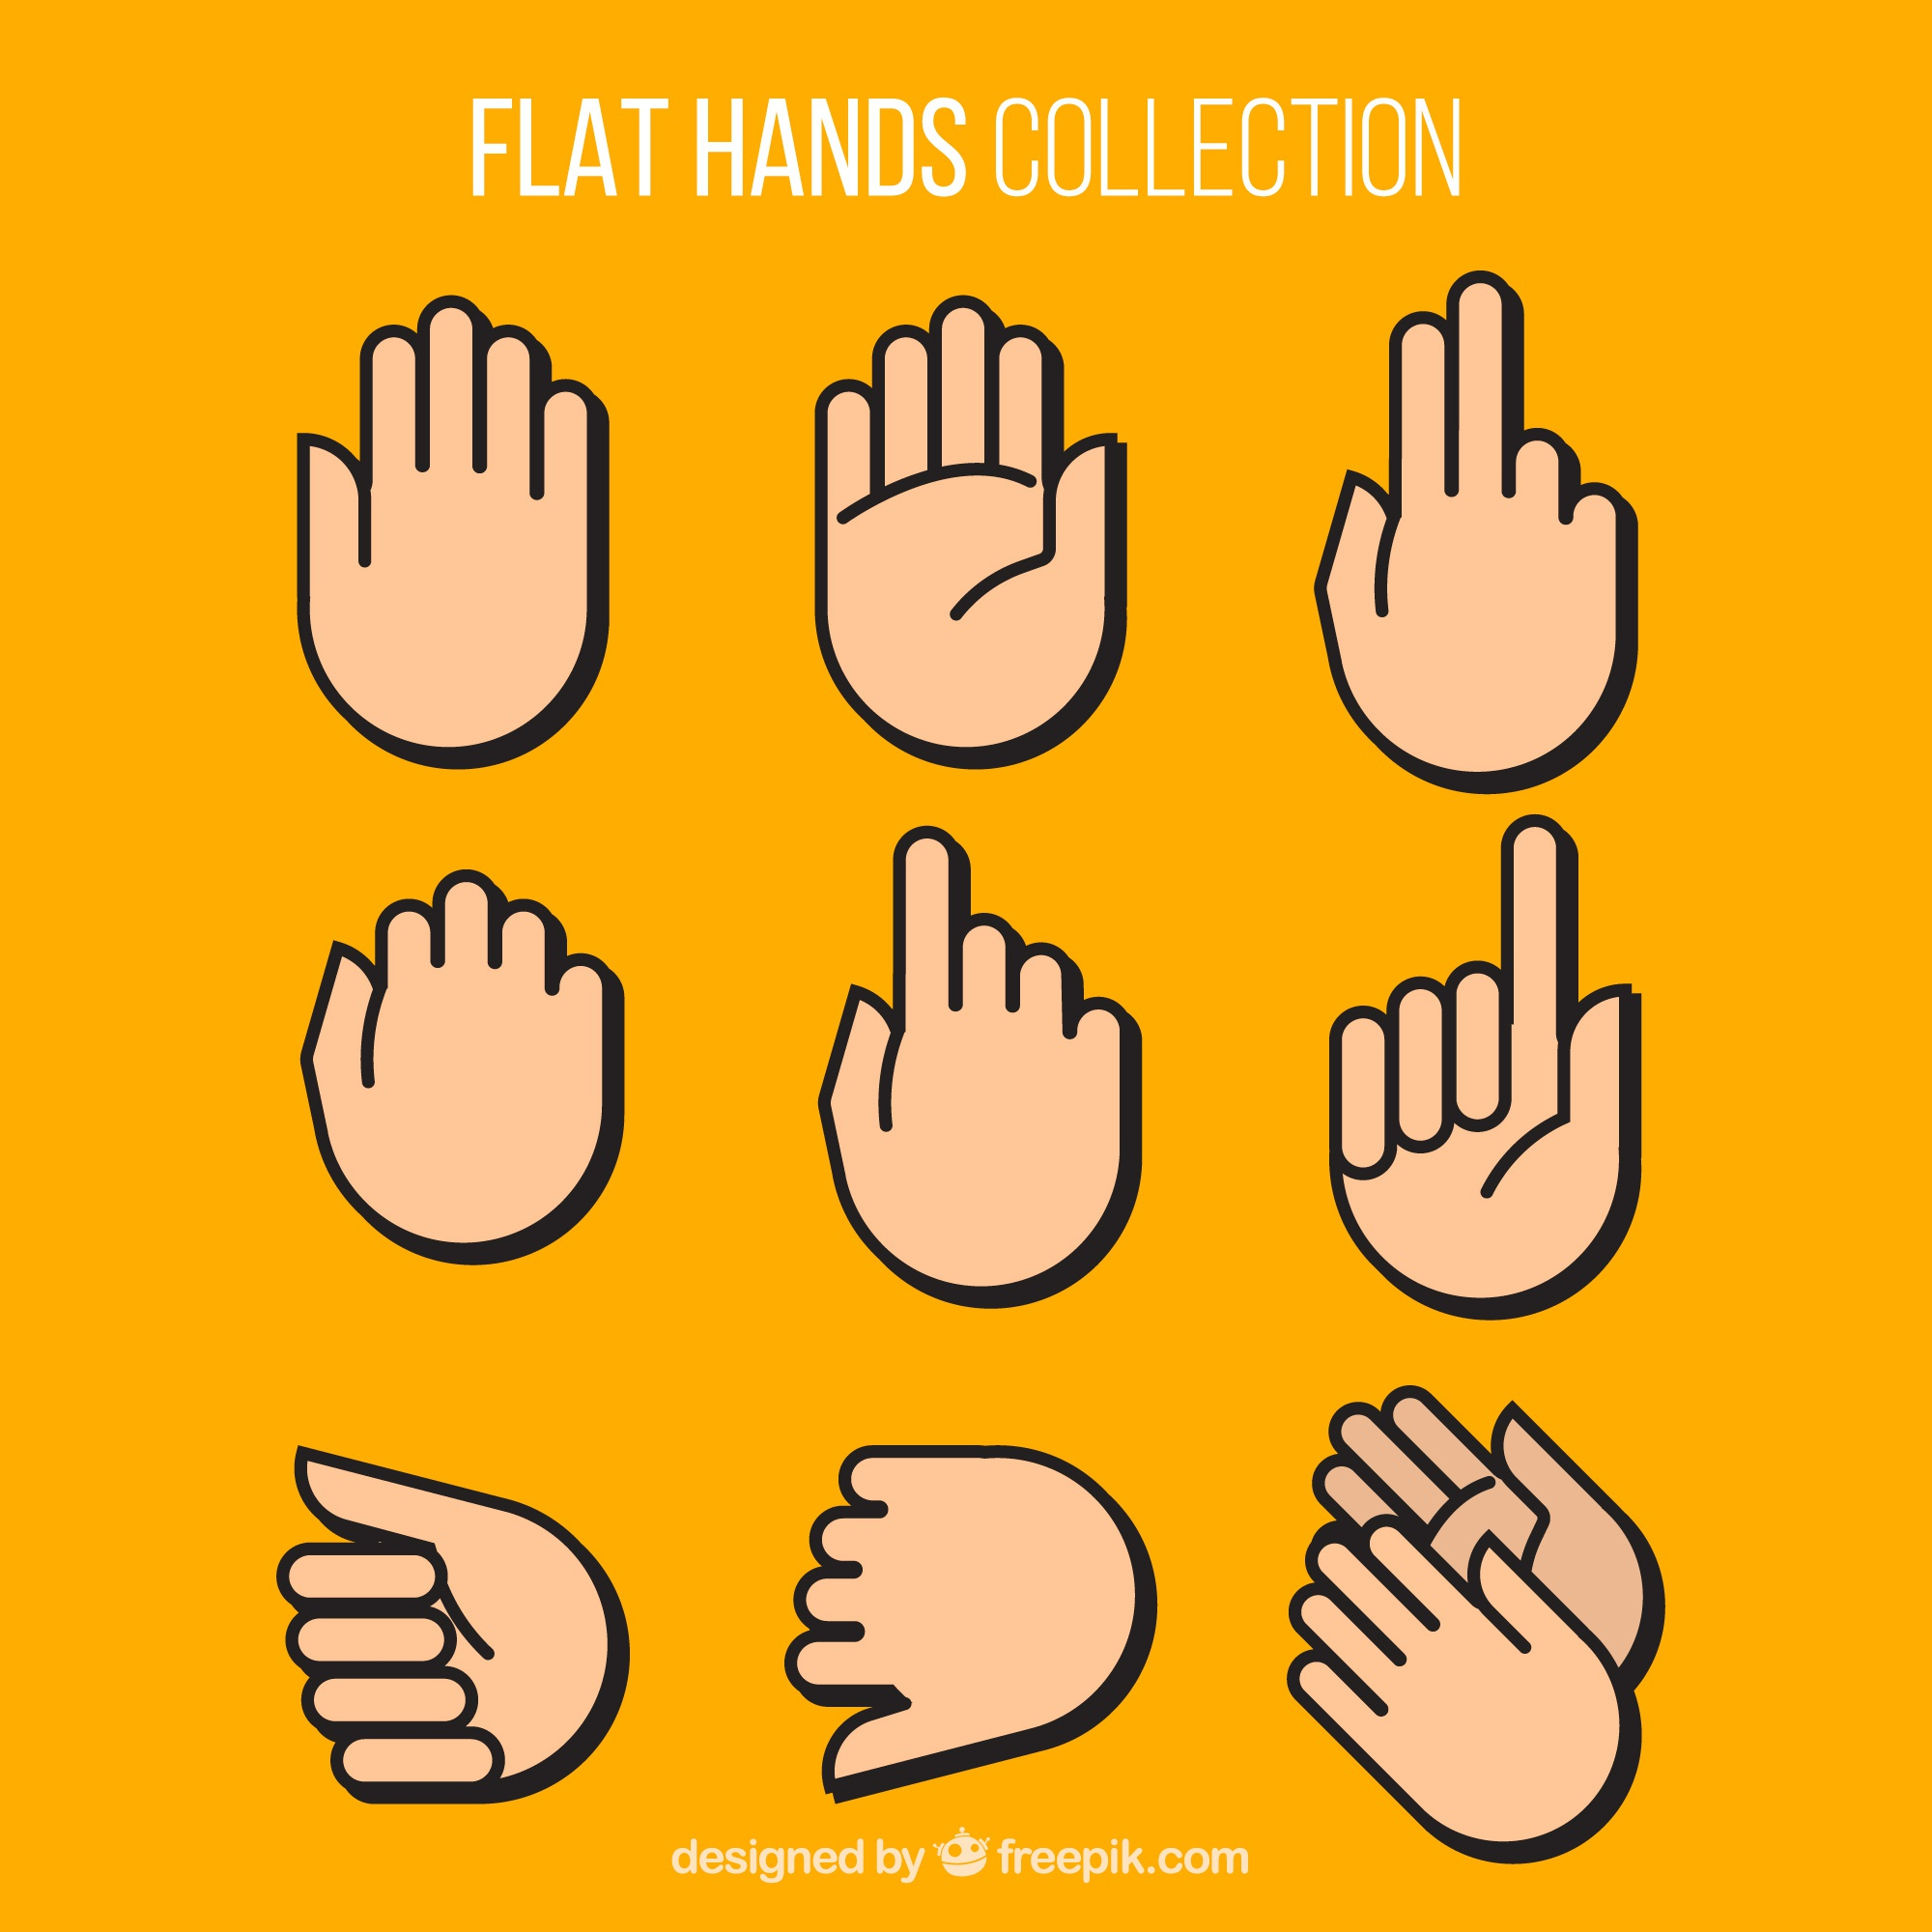 Collection of hands in flat design